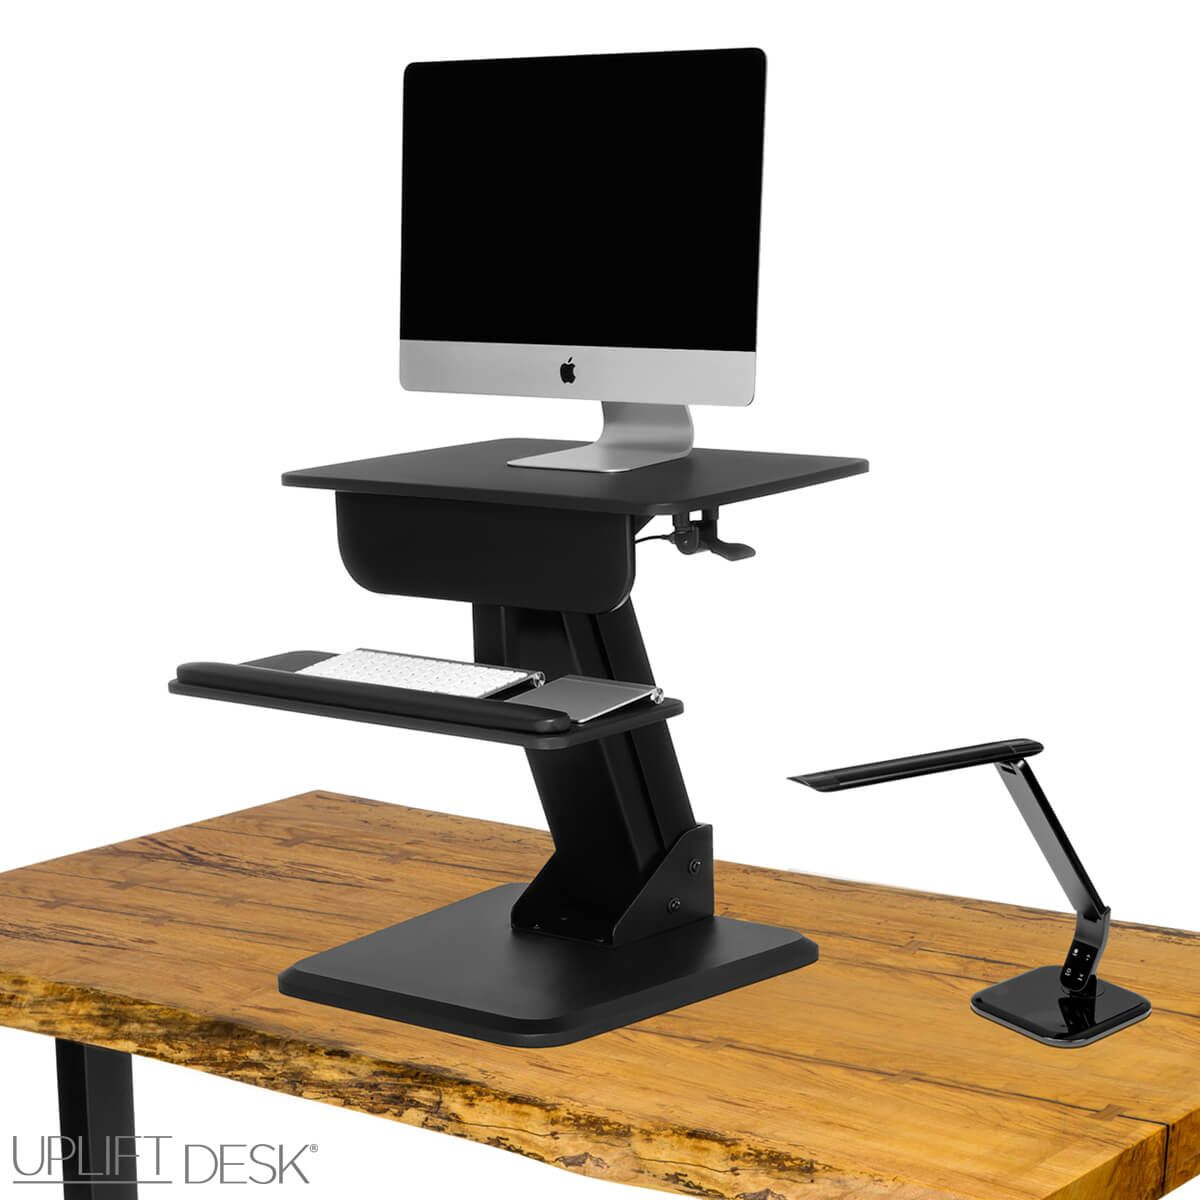 Shop Uplift Height Adjustable Standing Desk Converters Adjustable Standing Desk Converter Diy Standing Desk Standing Desk Converter